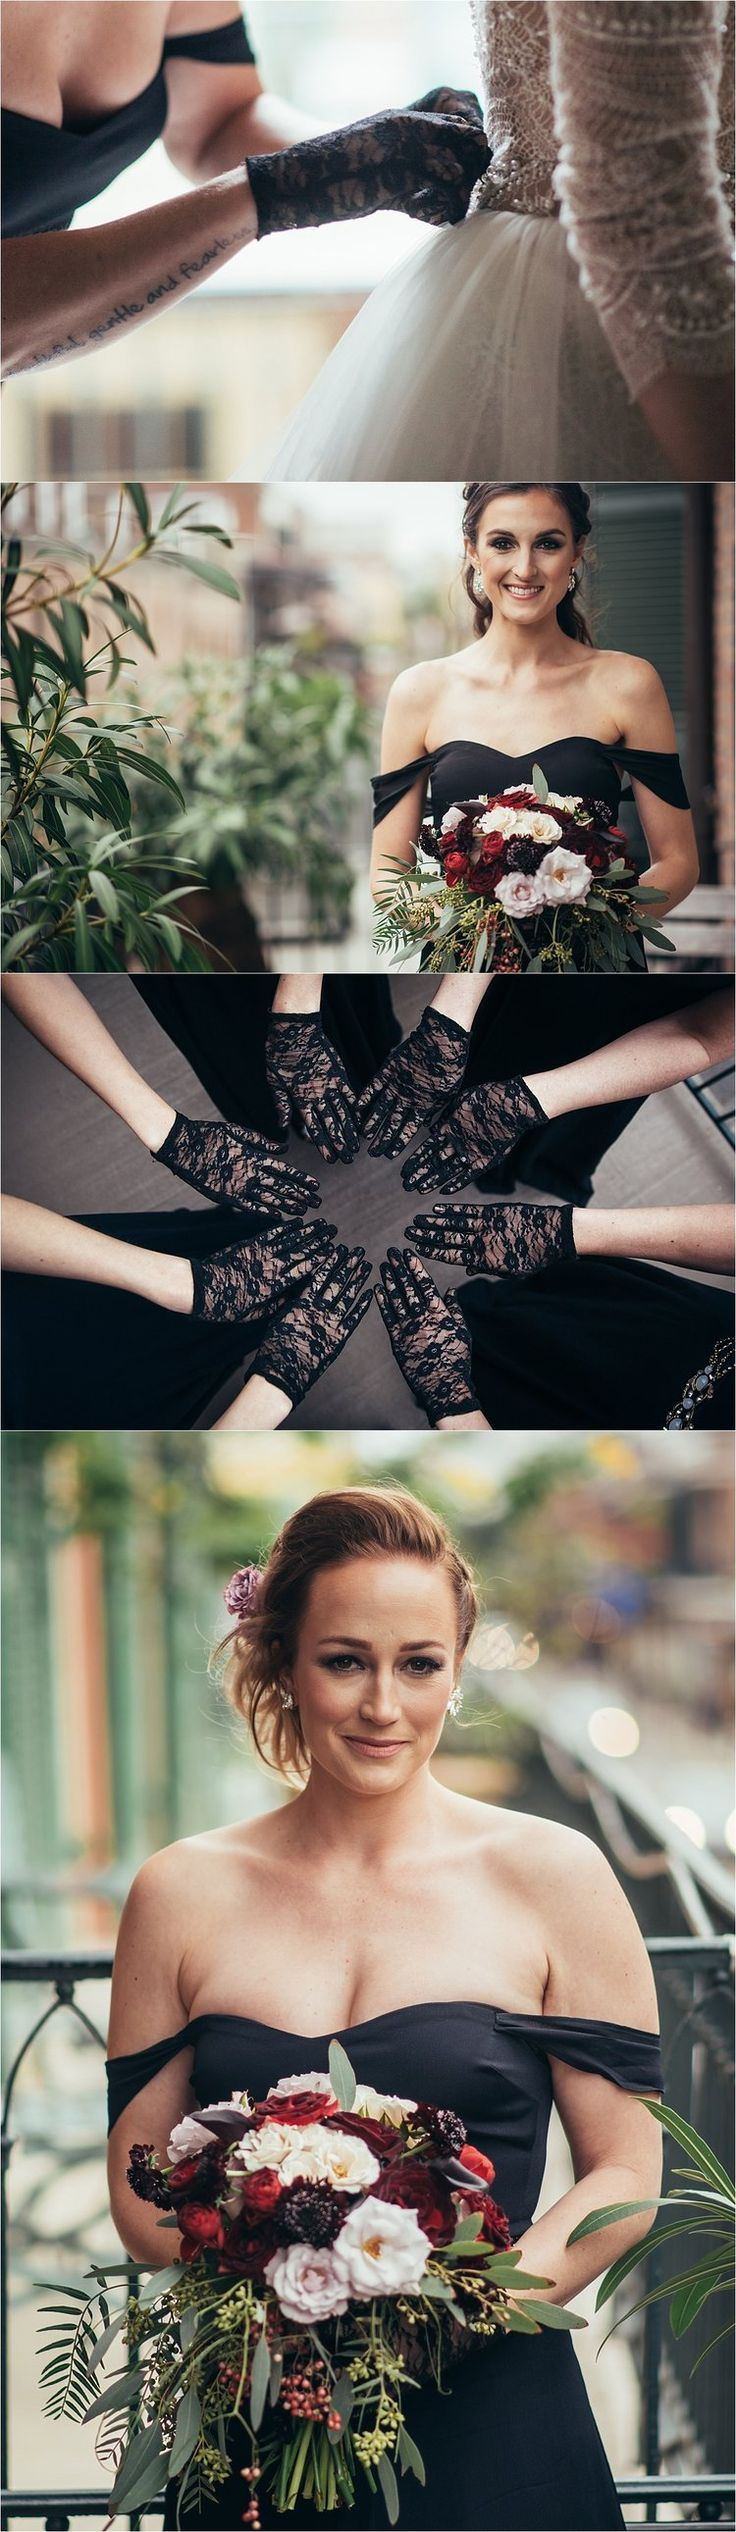 Sapphire Events | Eric James Photography | New Year's Eve Wedding | Gothic Wedding | Twilight Inspired Wedding | French Quarter Wedding | New Orleans Wedding | Black Bridesmaids Dresses | Tattoo | Quote Tattoo | Lace Gloves | bridesmaids